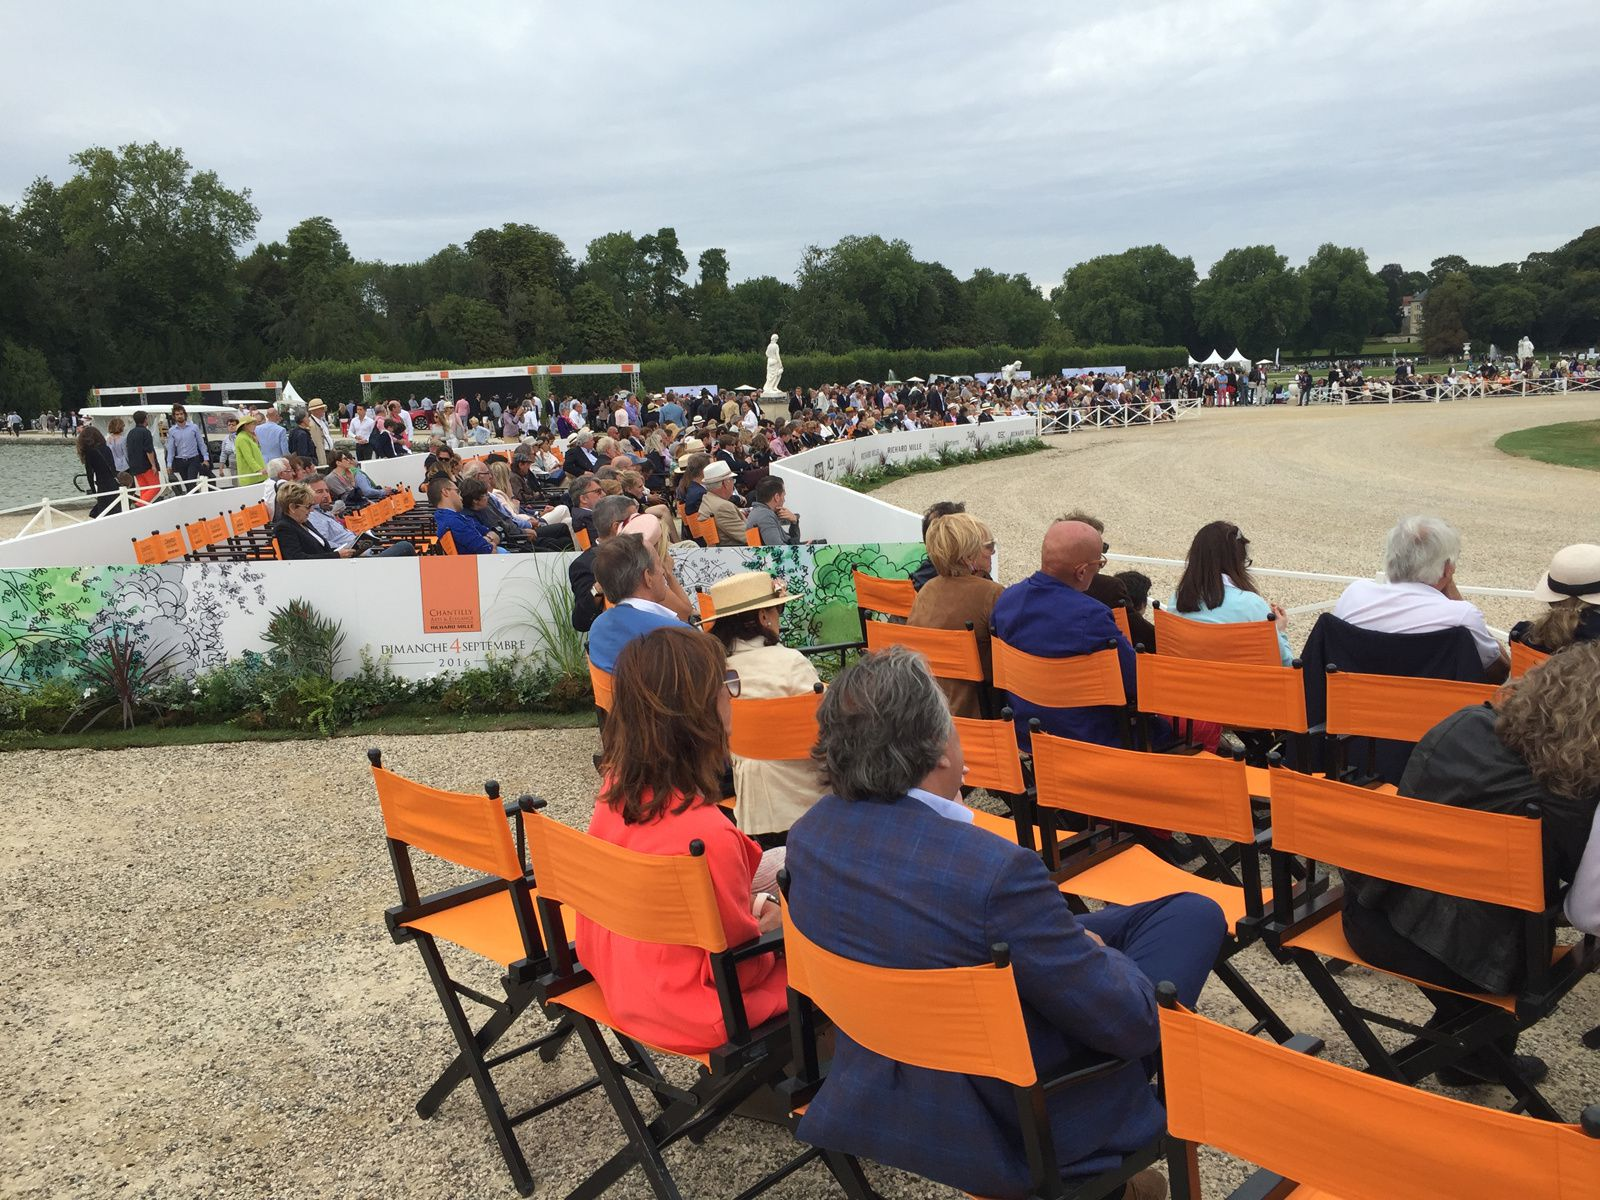 Chantilly Arts & Elégance Richard Mille 2016